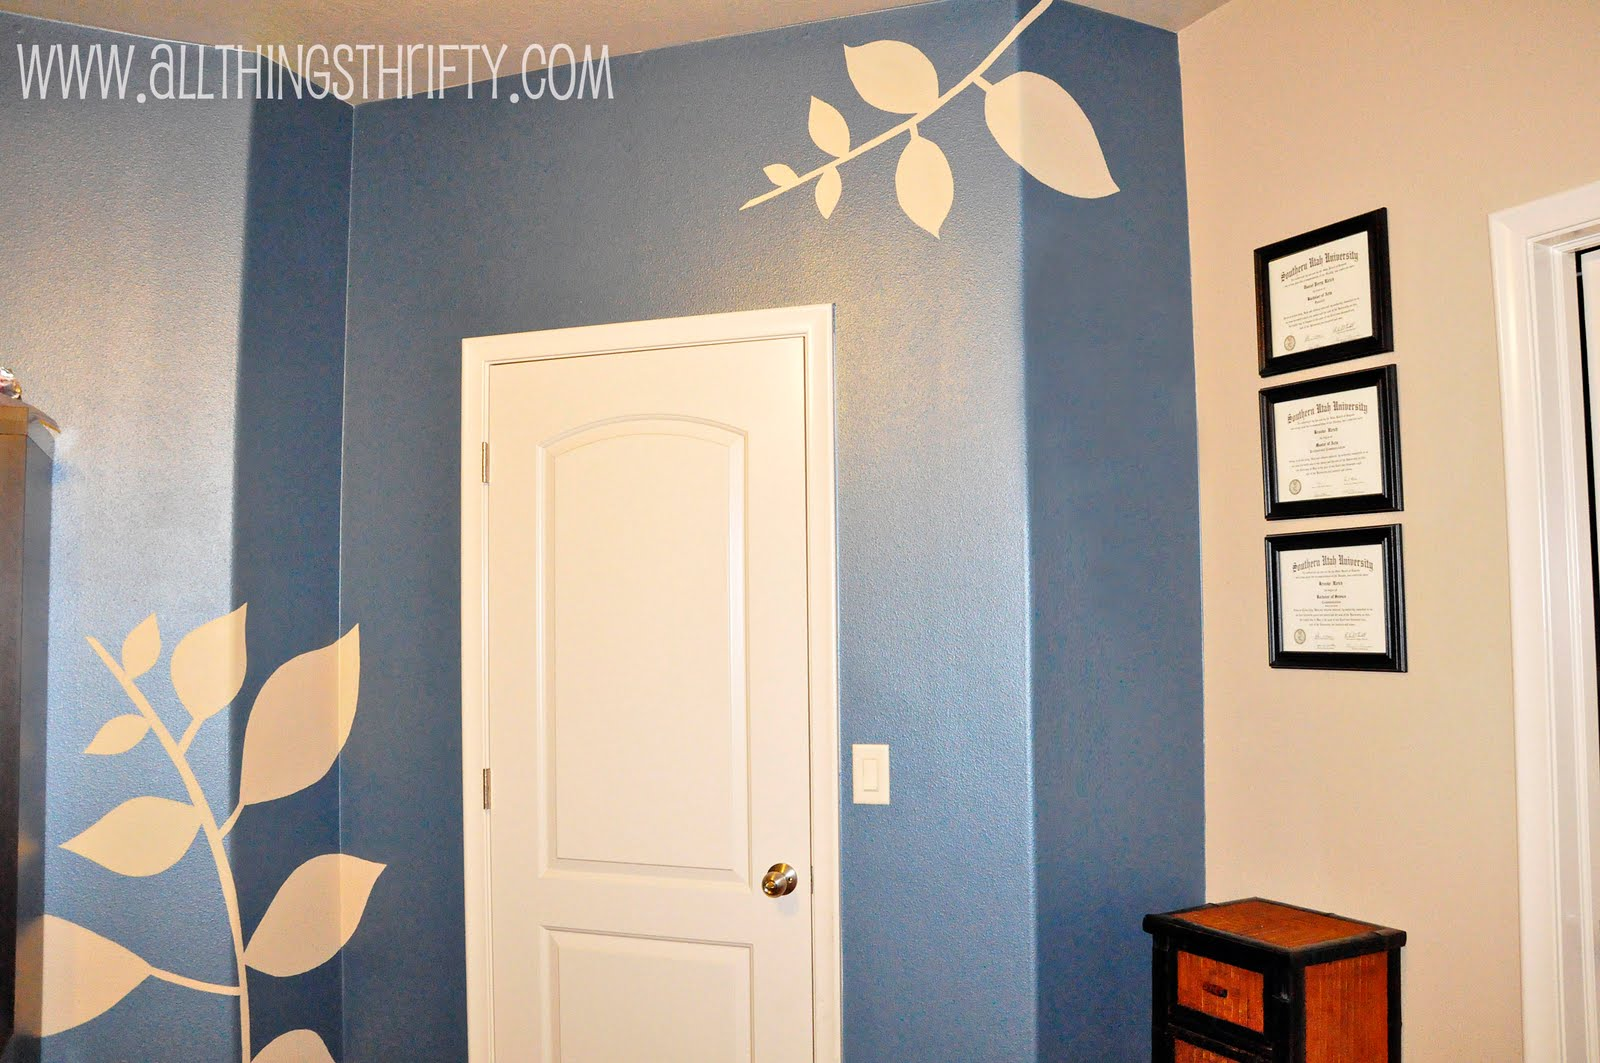 Home depot paint prices per gallon home painting ideas Home depot interior paint prices